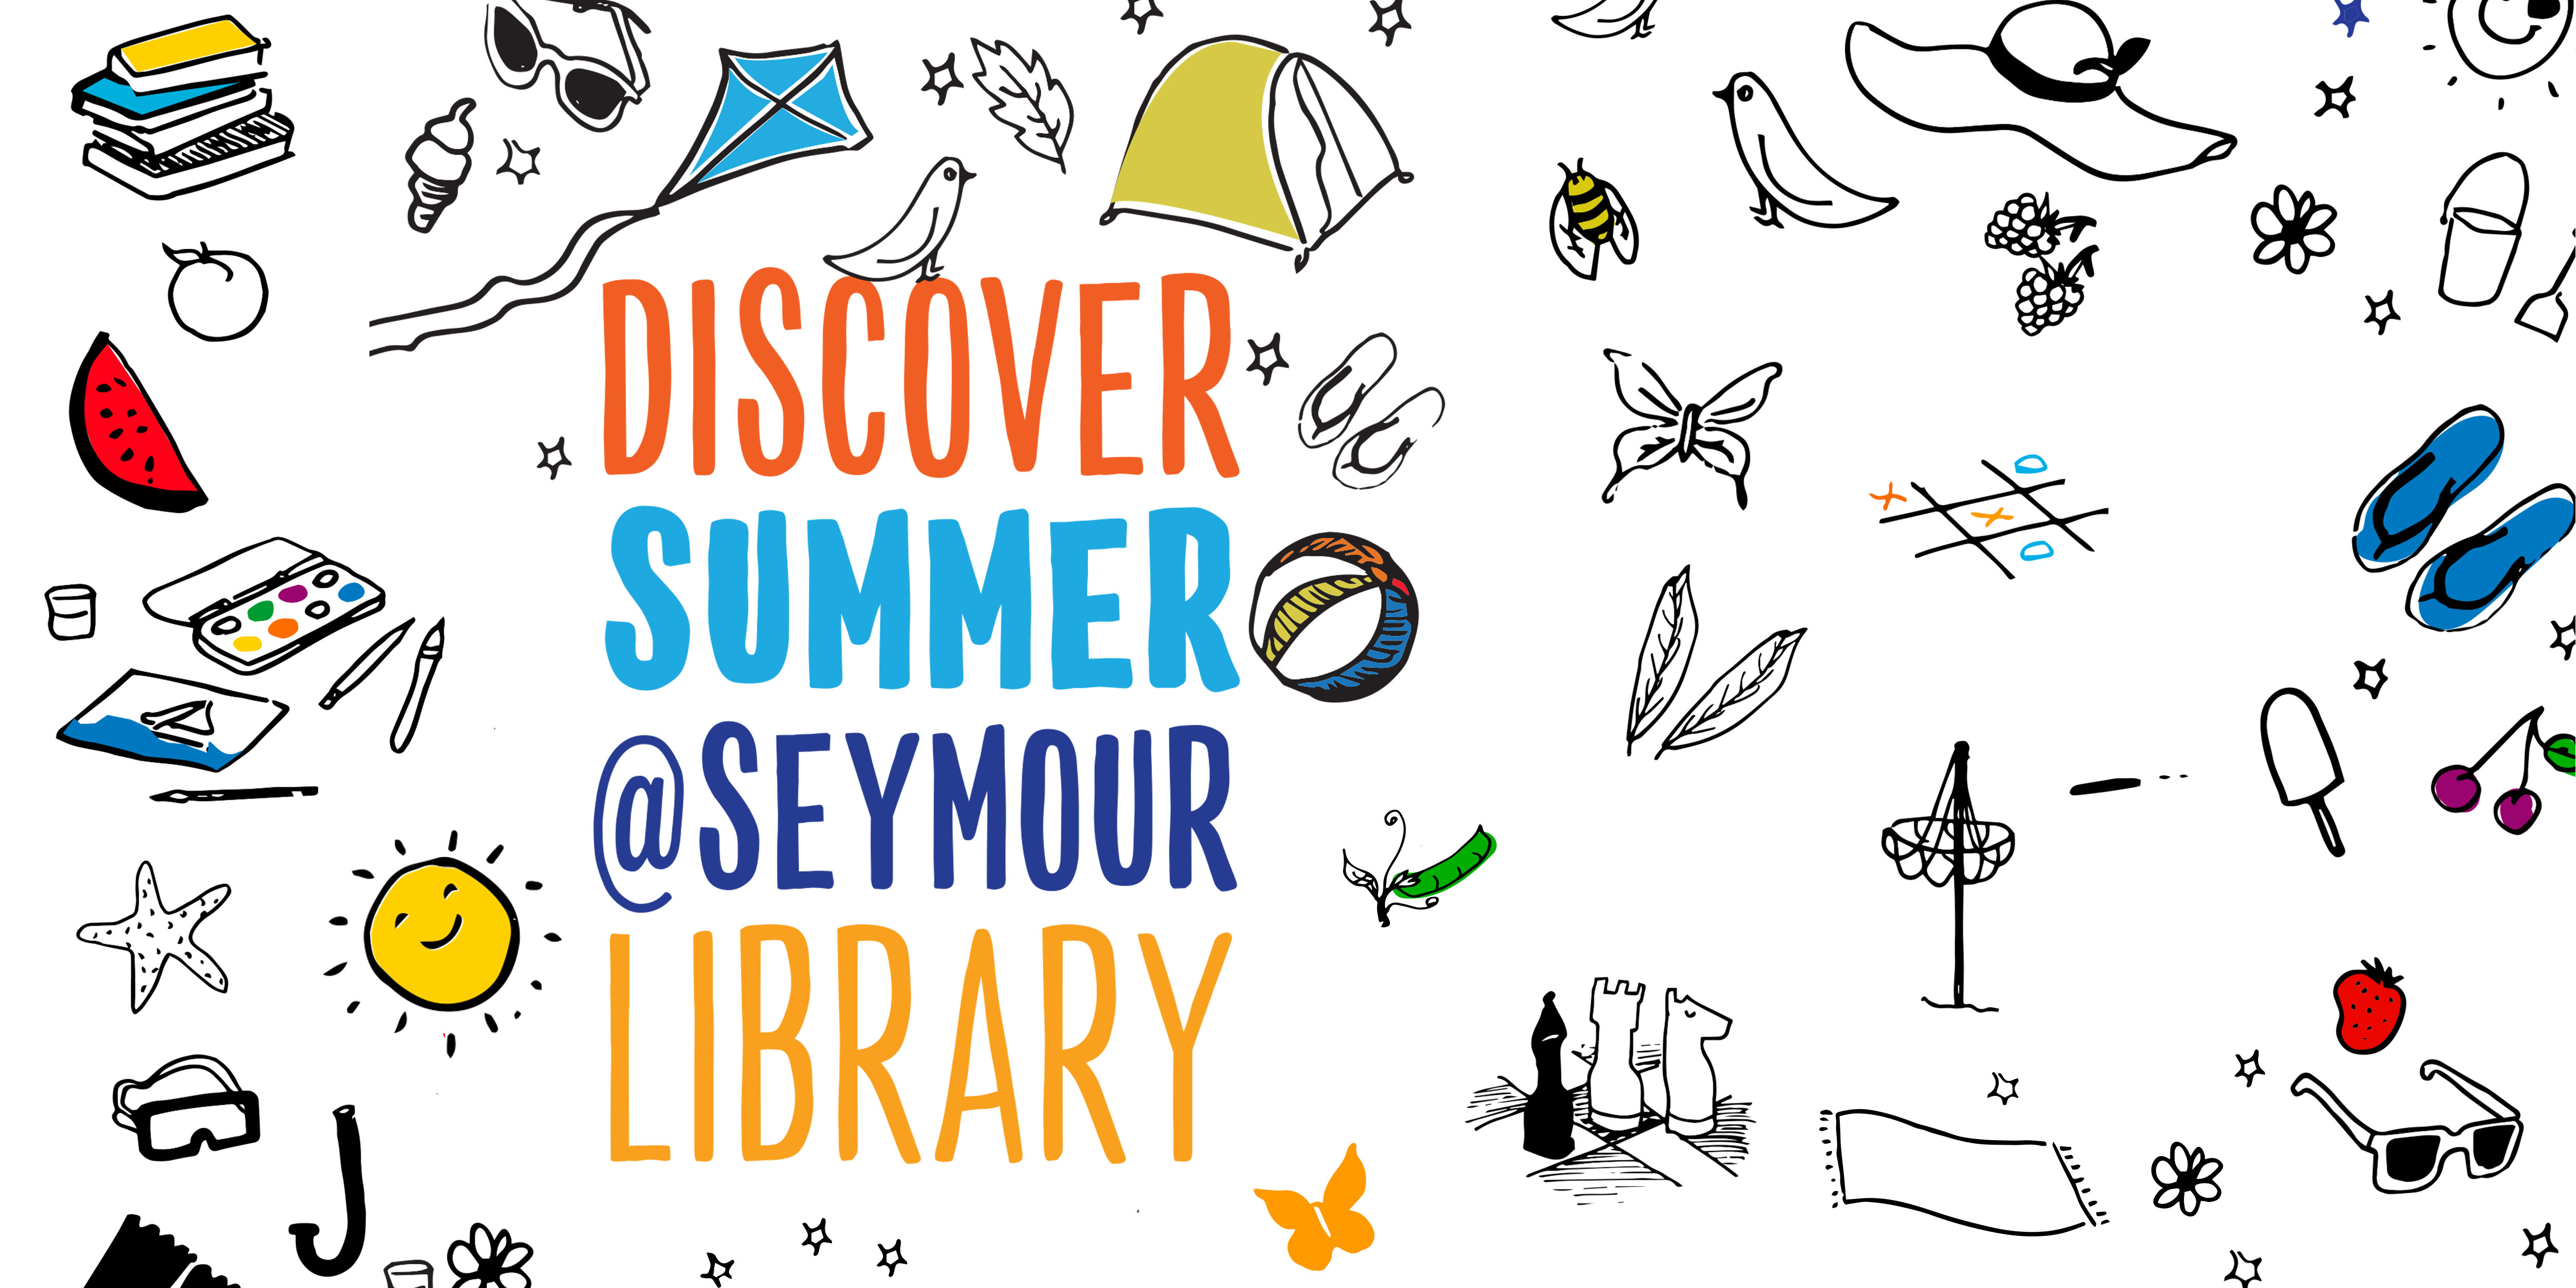 Discover Summer!